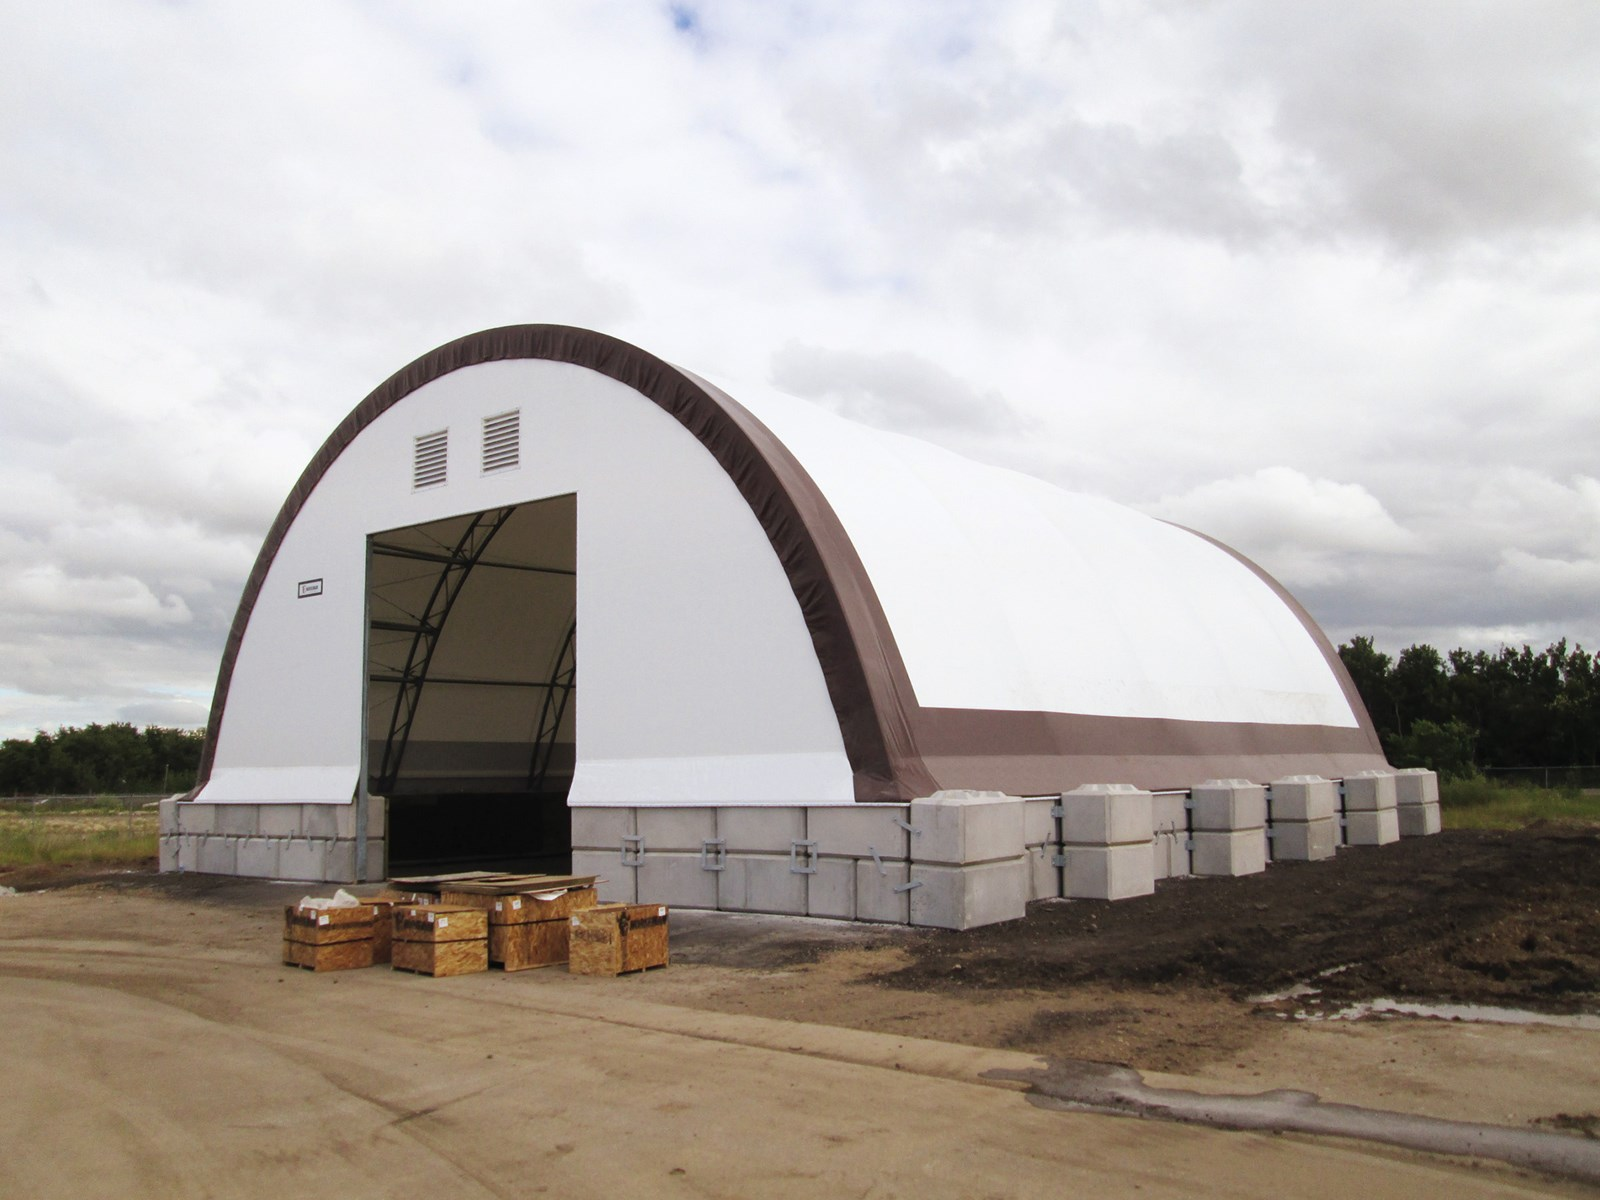 Salt and Sand Storage | City of Prince Albert